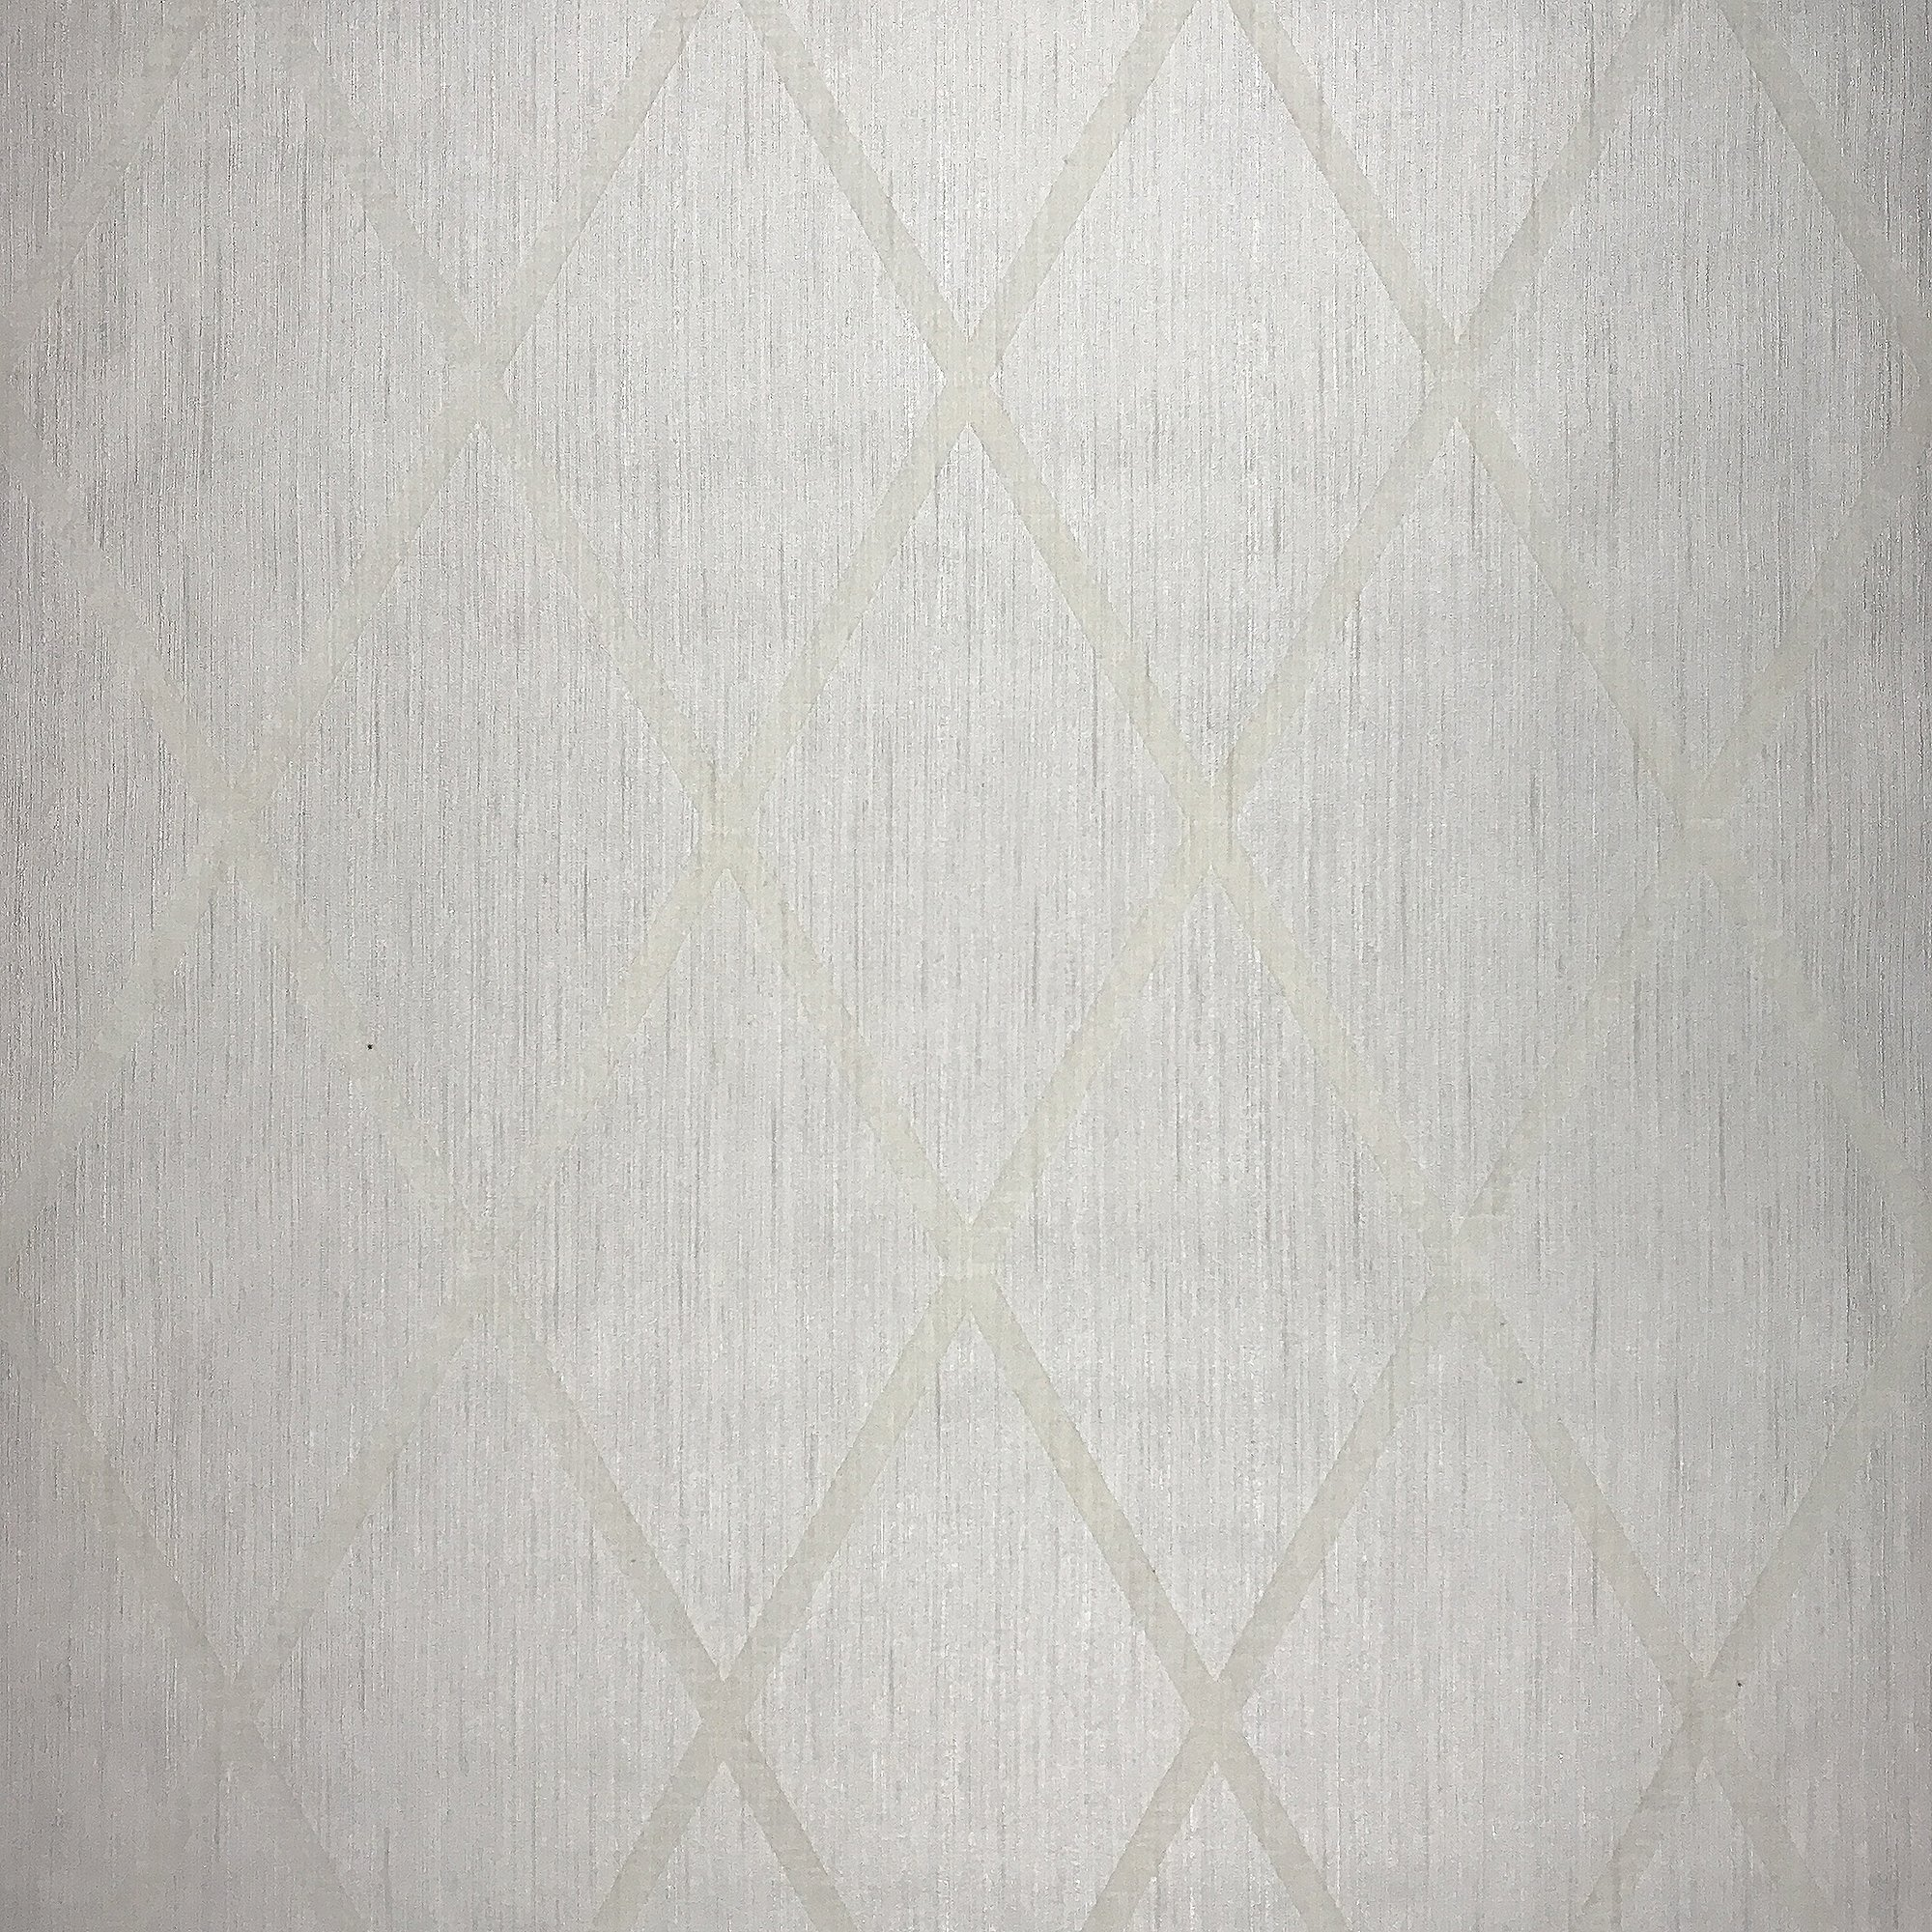 76 sq.ft Rolls Portofino Textured wallcoverings Modern Flock Embossed Vinyl Non-Woven Wallpaper Ivory Cream Pearl Gold Metallic Diamond Flocked Lines Velvet Textures Geometric Contemporary Velour 3D